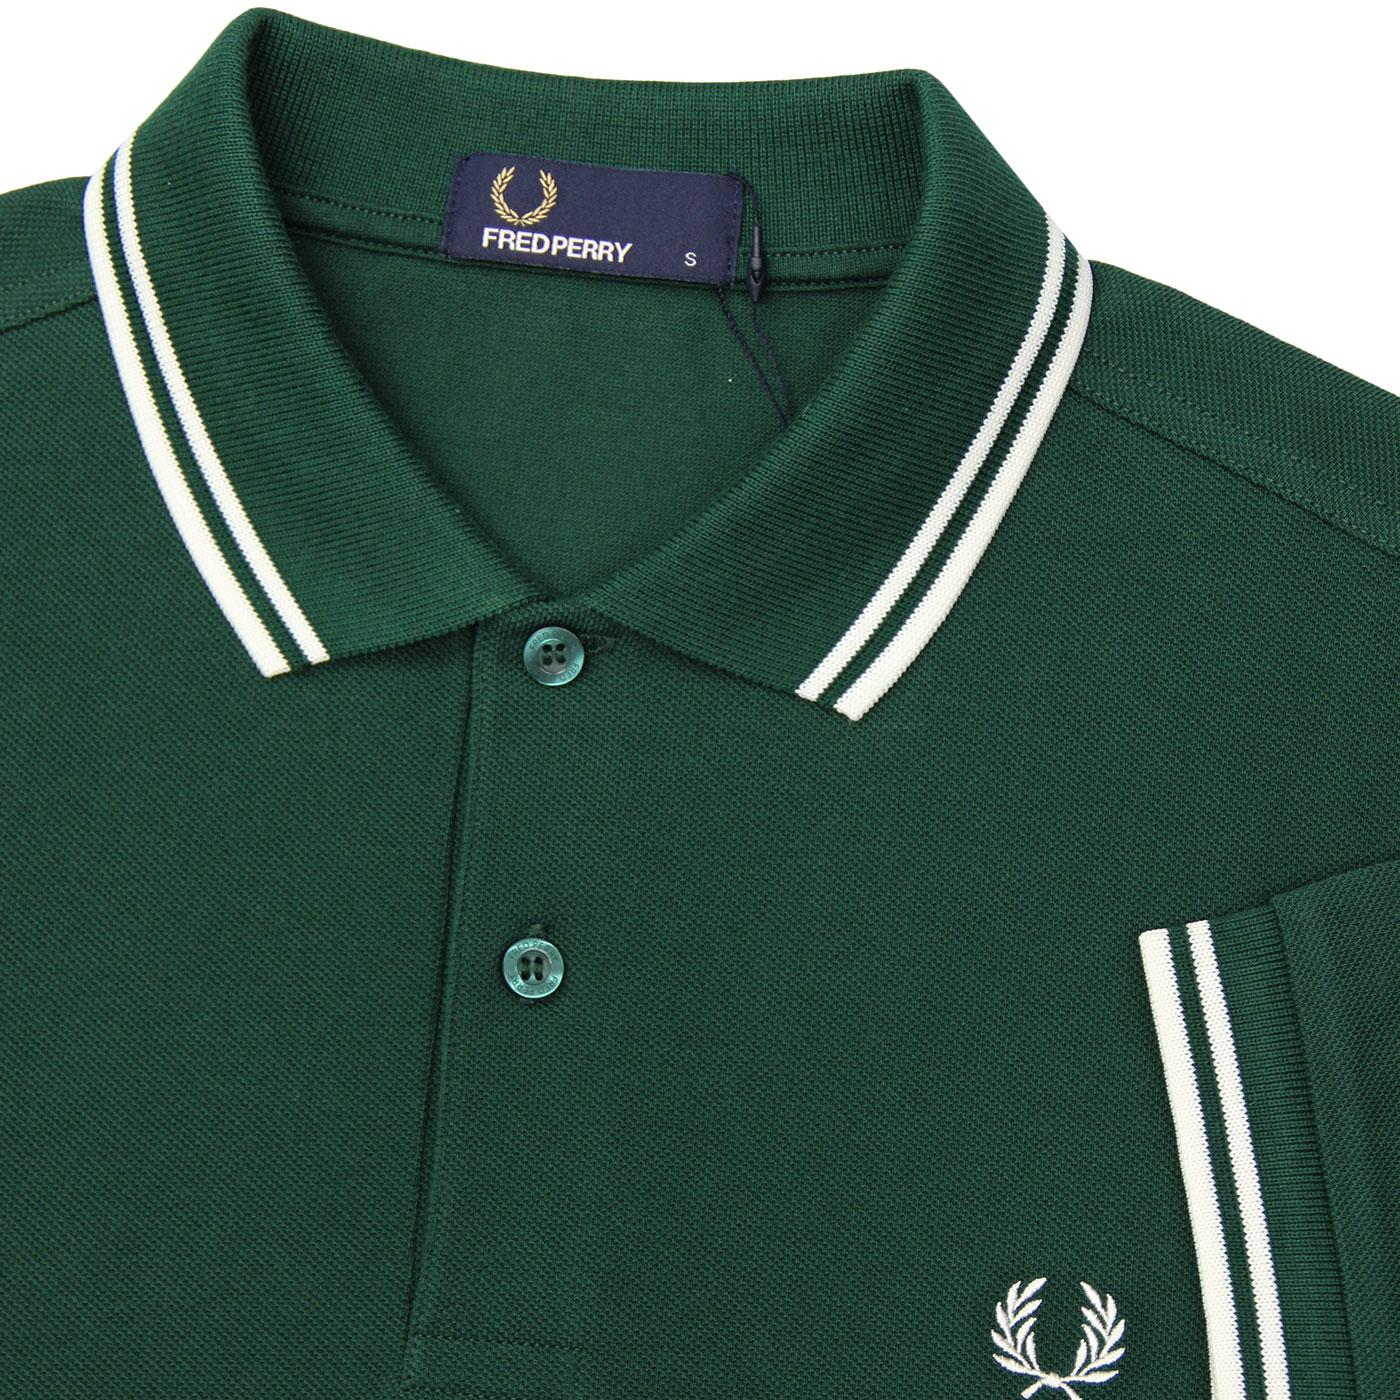 17df76063 FRED PERRY M3600 Mod Twin Tipped Polo Top in Ivy Green